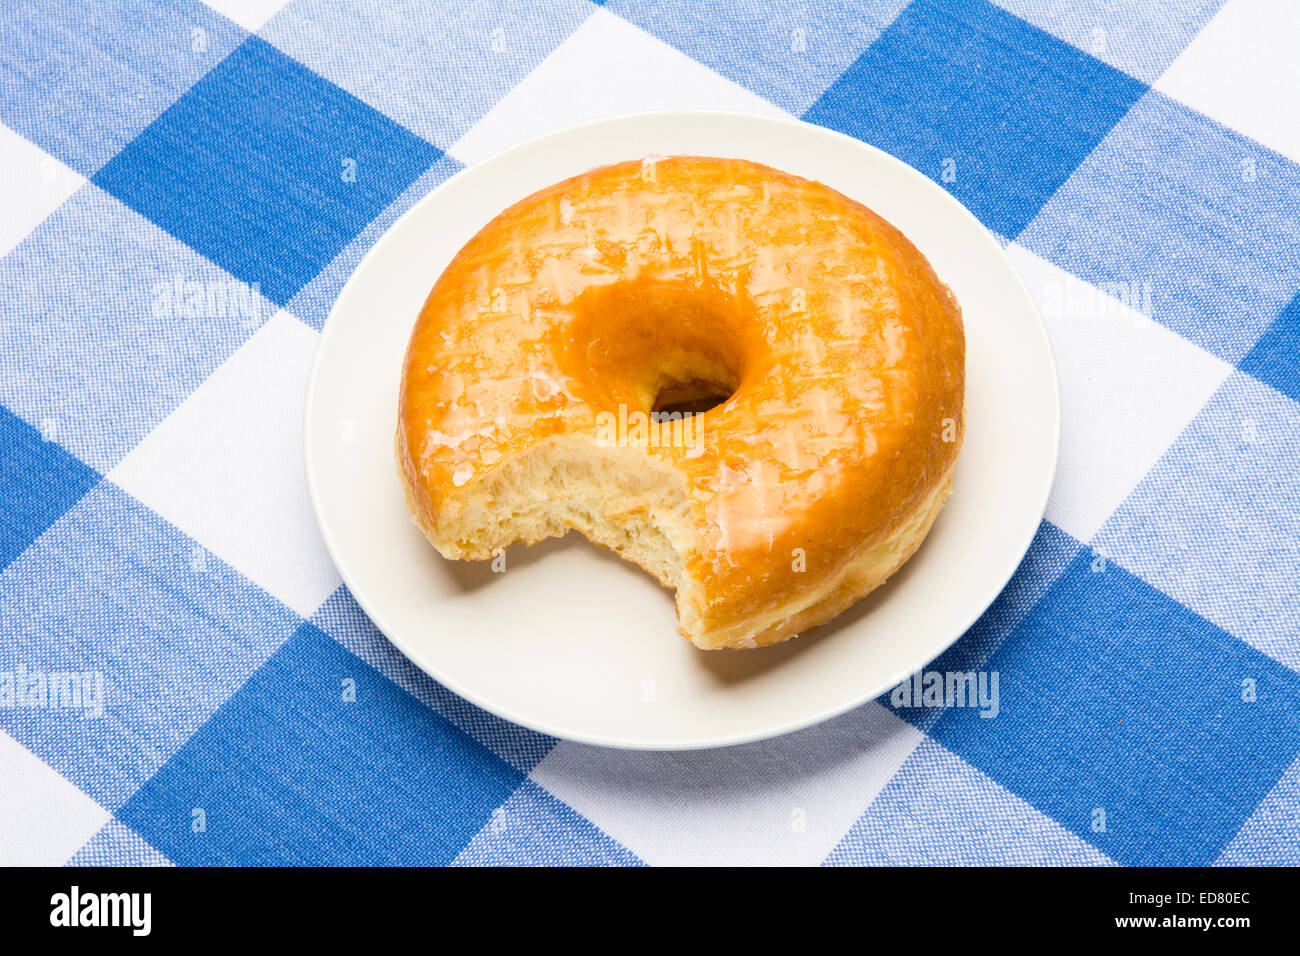 Delicious glazed donut with bite taken out during breakfast - Stock Image